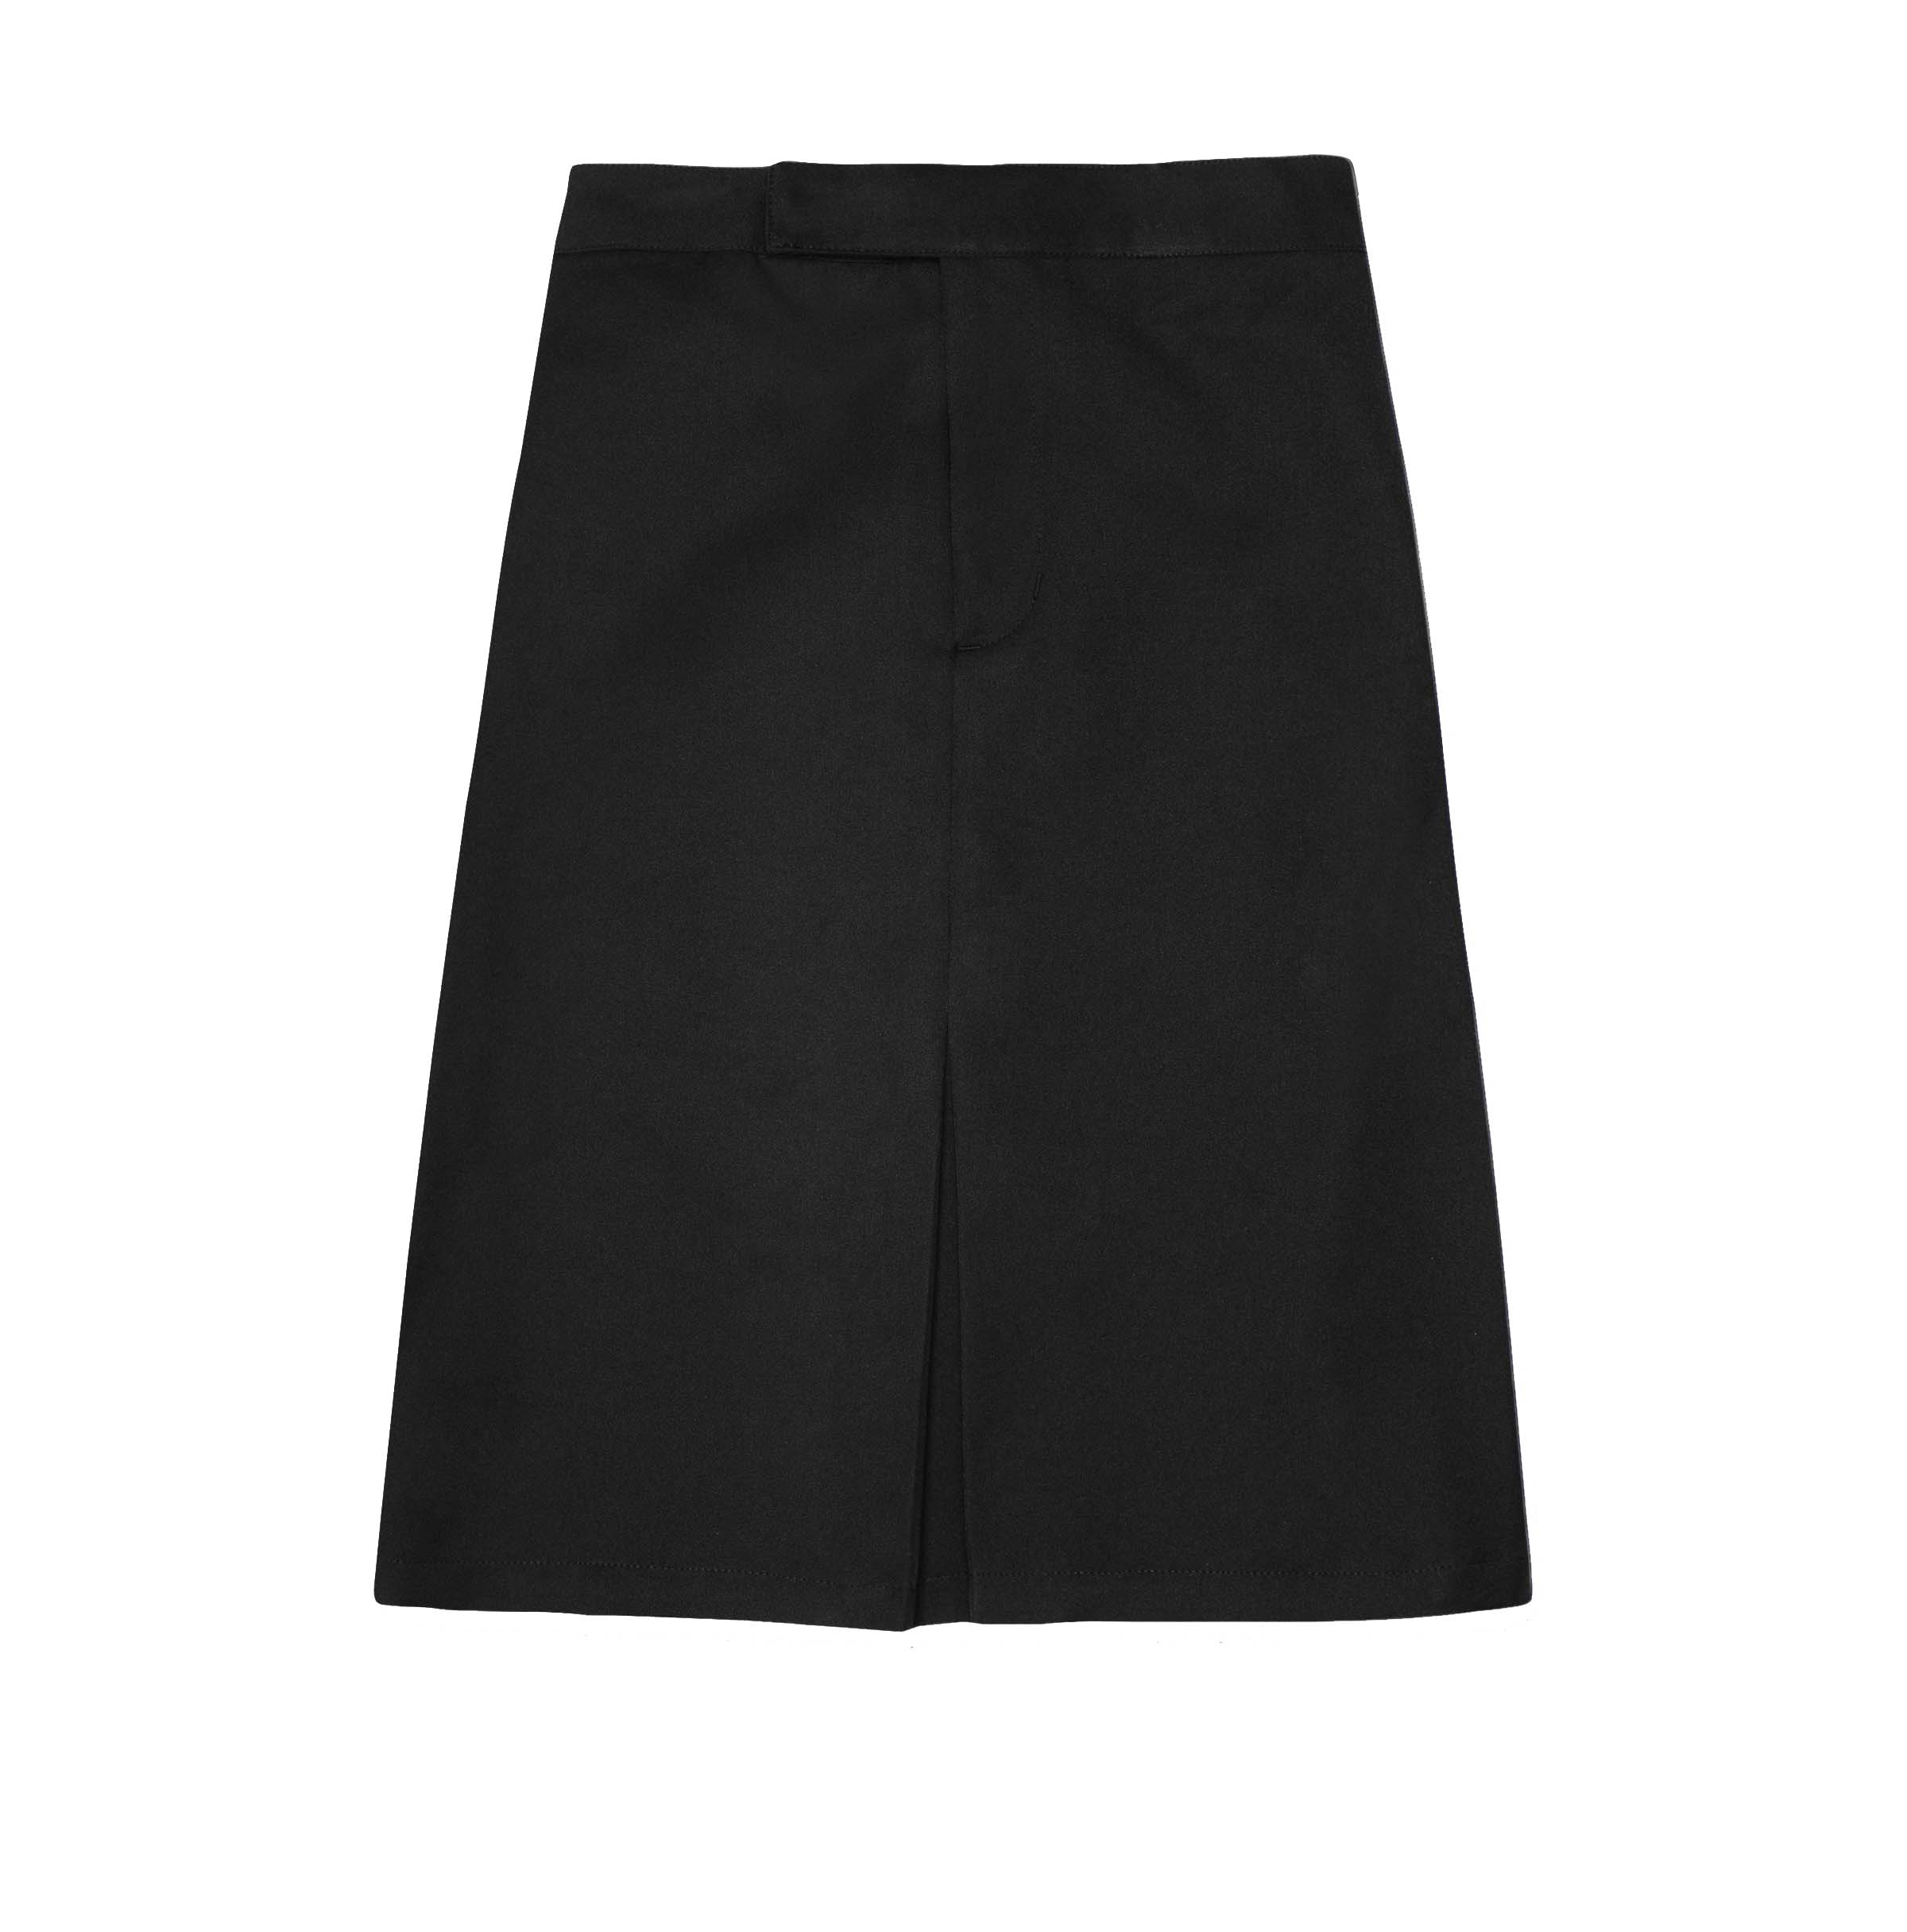 School Skirts Kmart Imported School Skirt Kmart